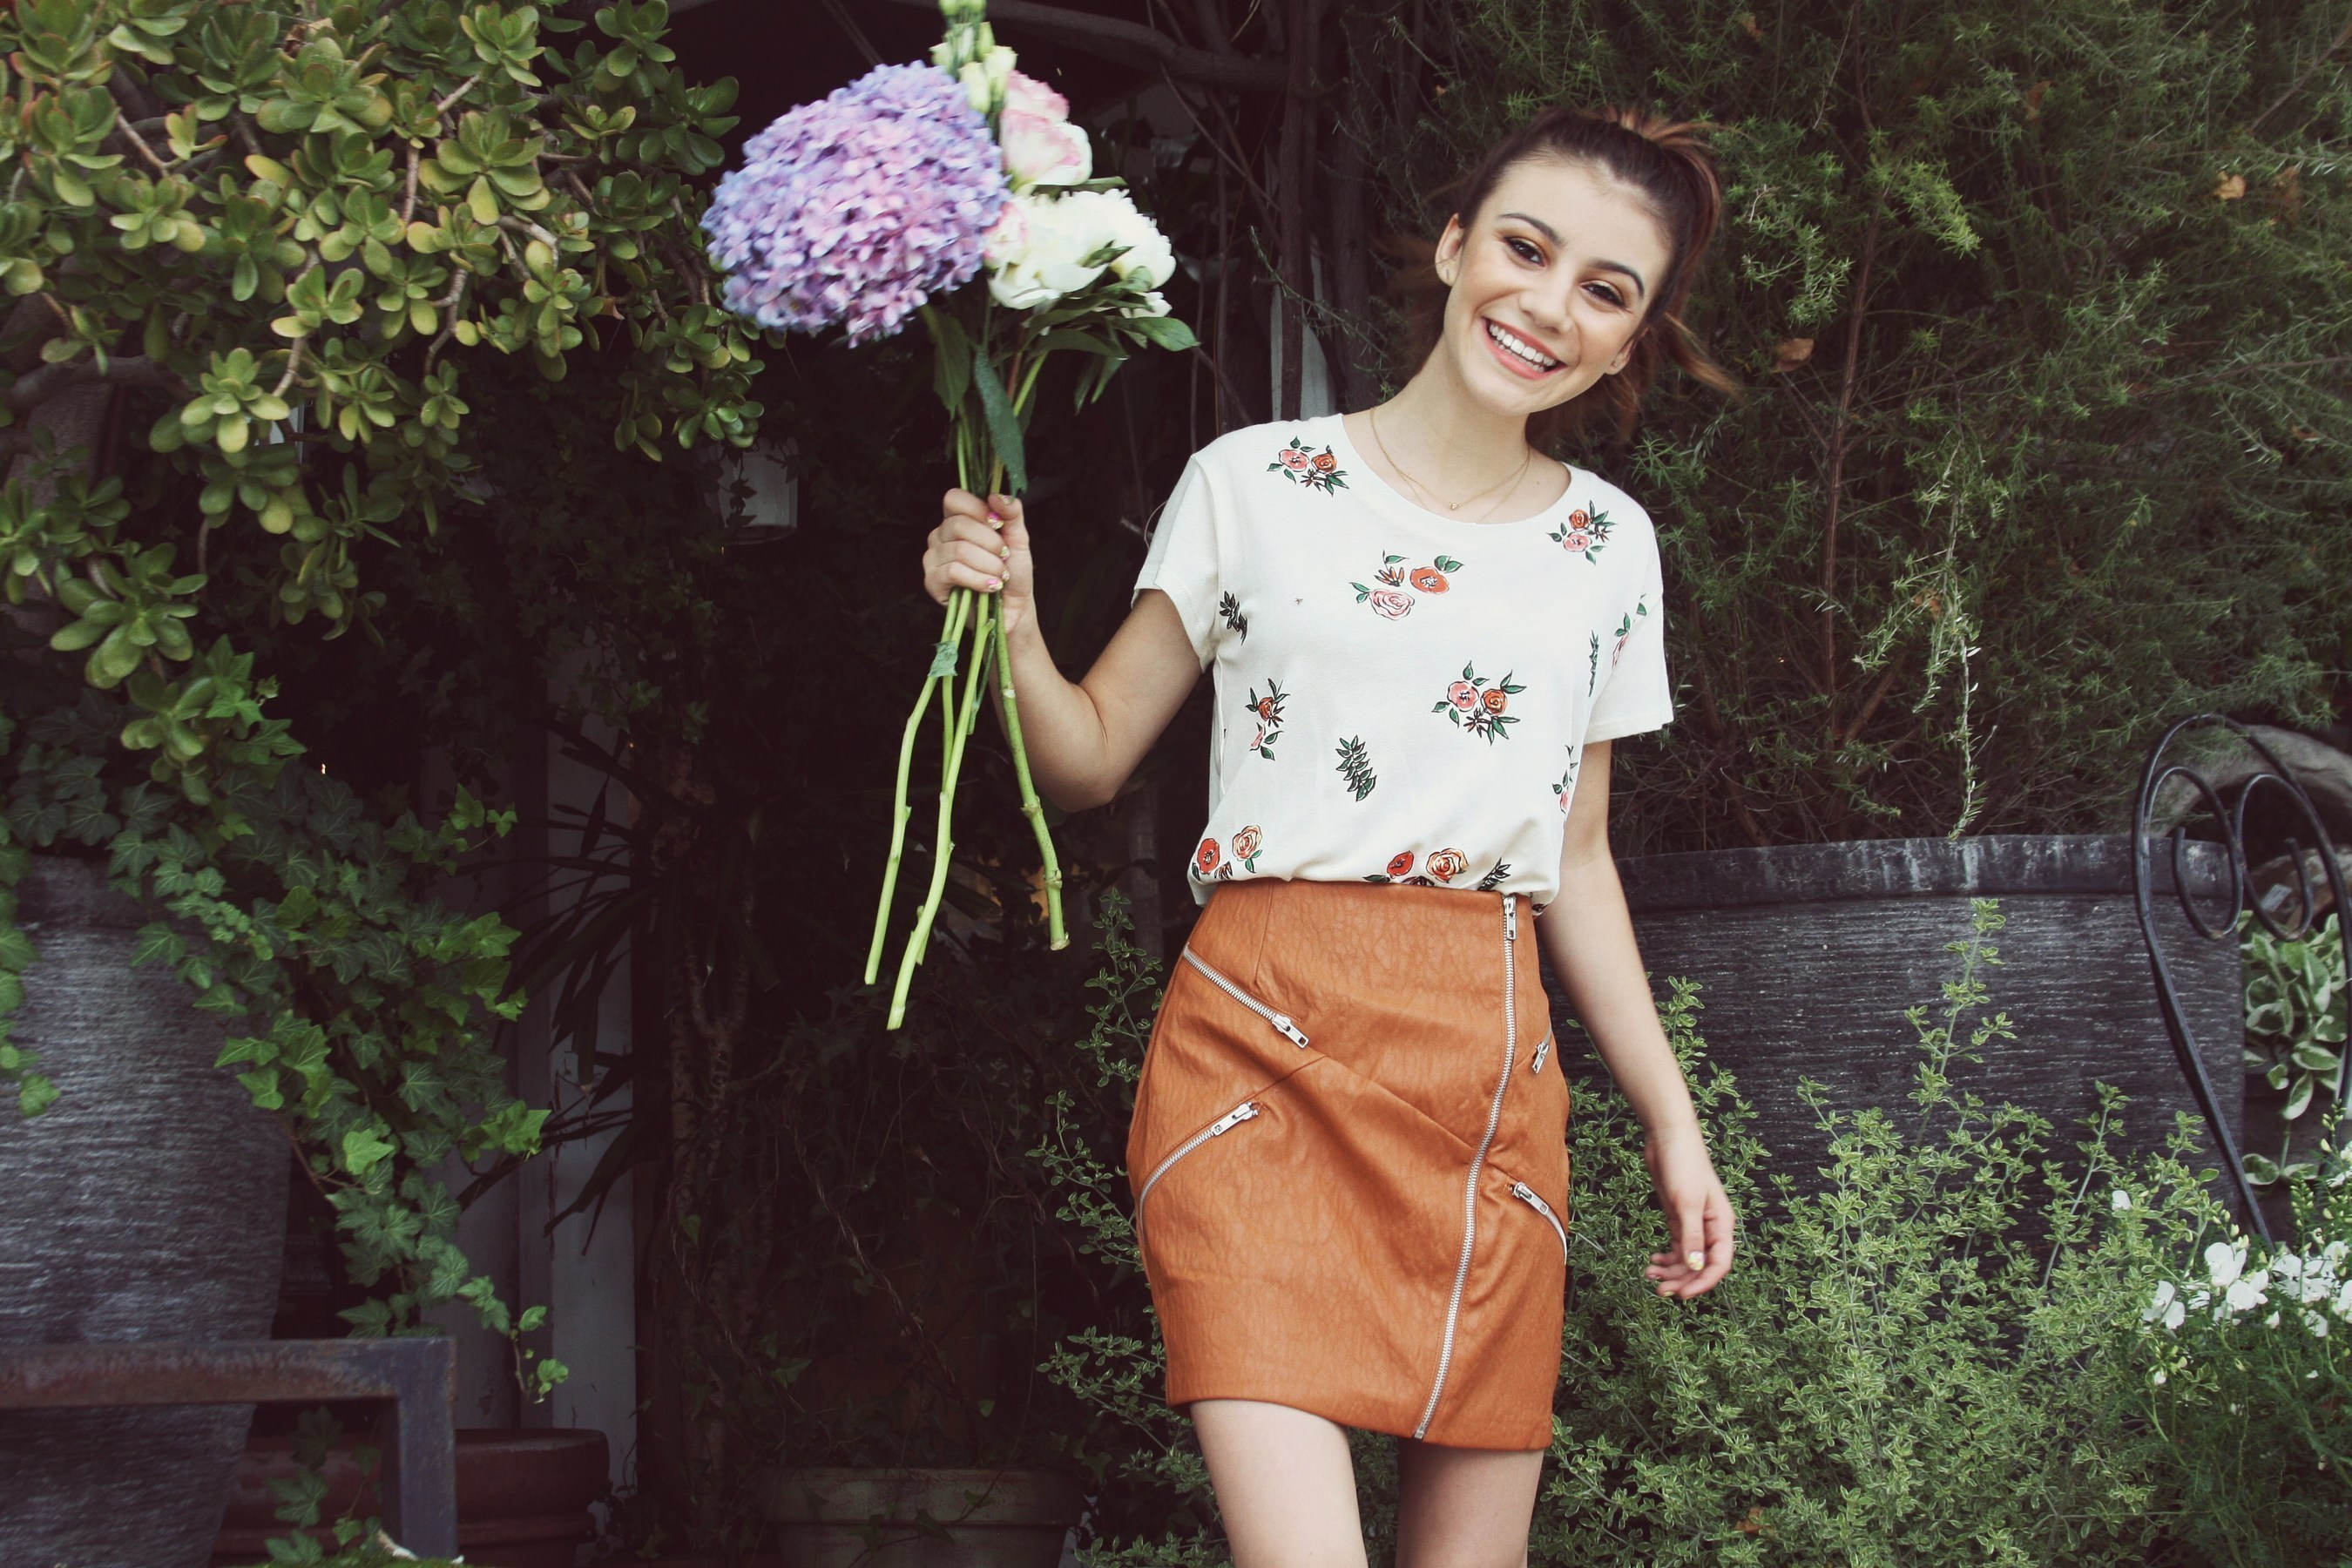 The Style Club Launches Clothing Collection With Disney Star ...